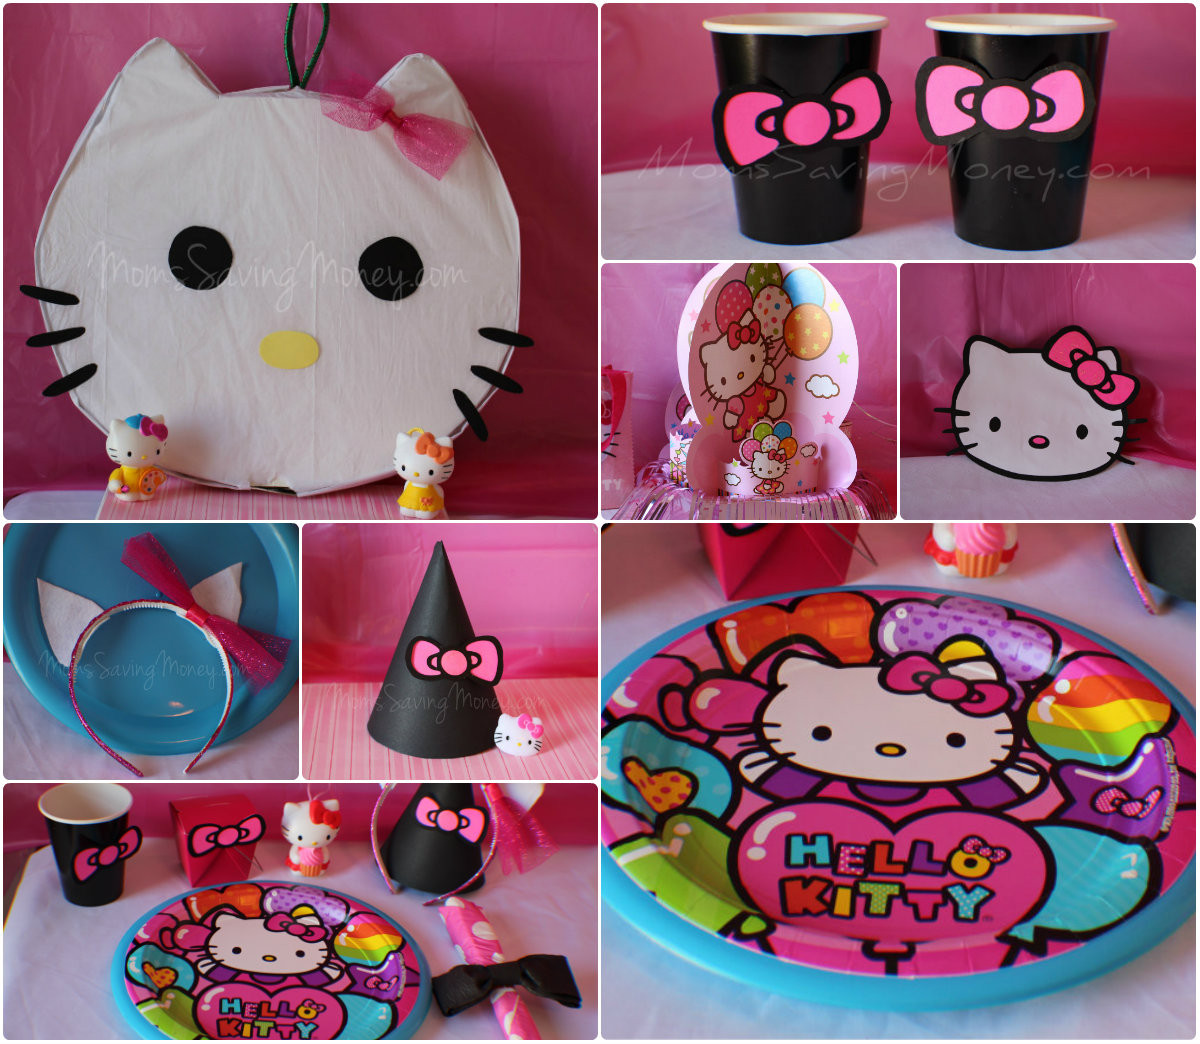 Best ideas about Hello Kitty Birthday Decorations . Save or Pin Hello Kitty Party Ideas Rebecca Autry Creations Now.